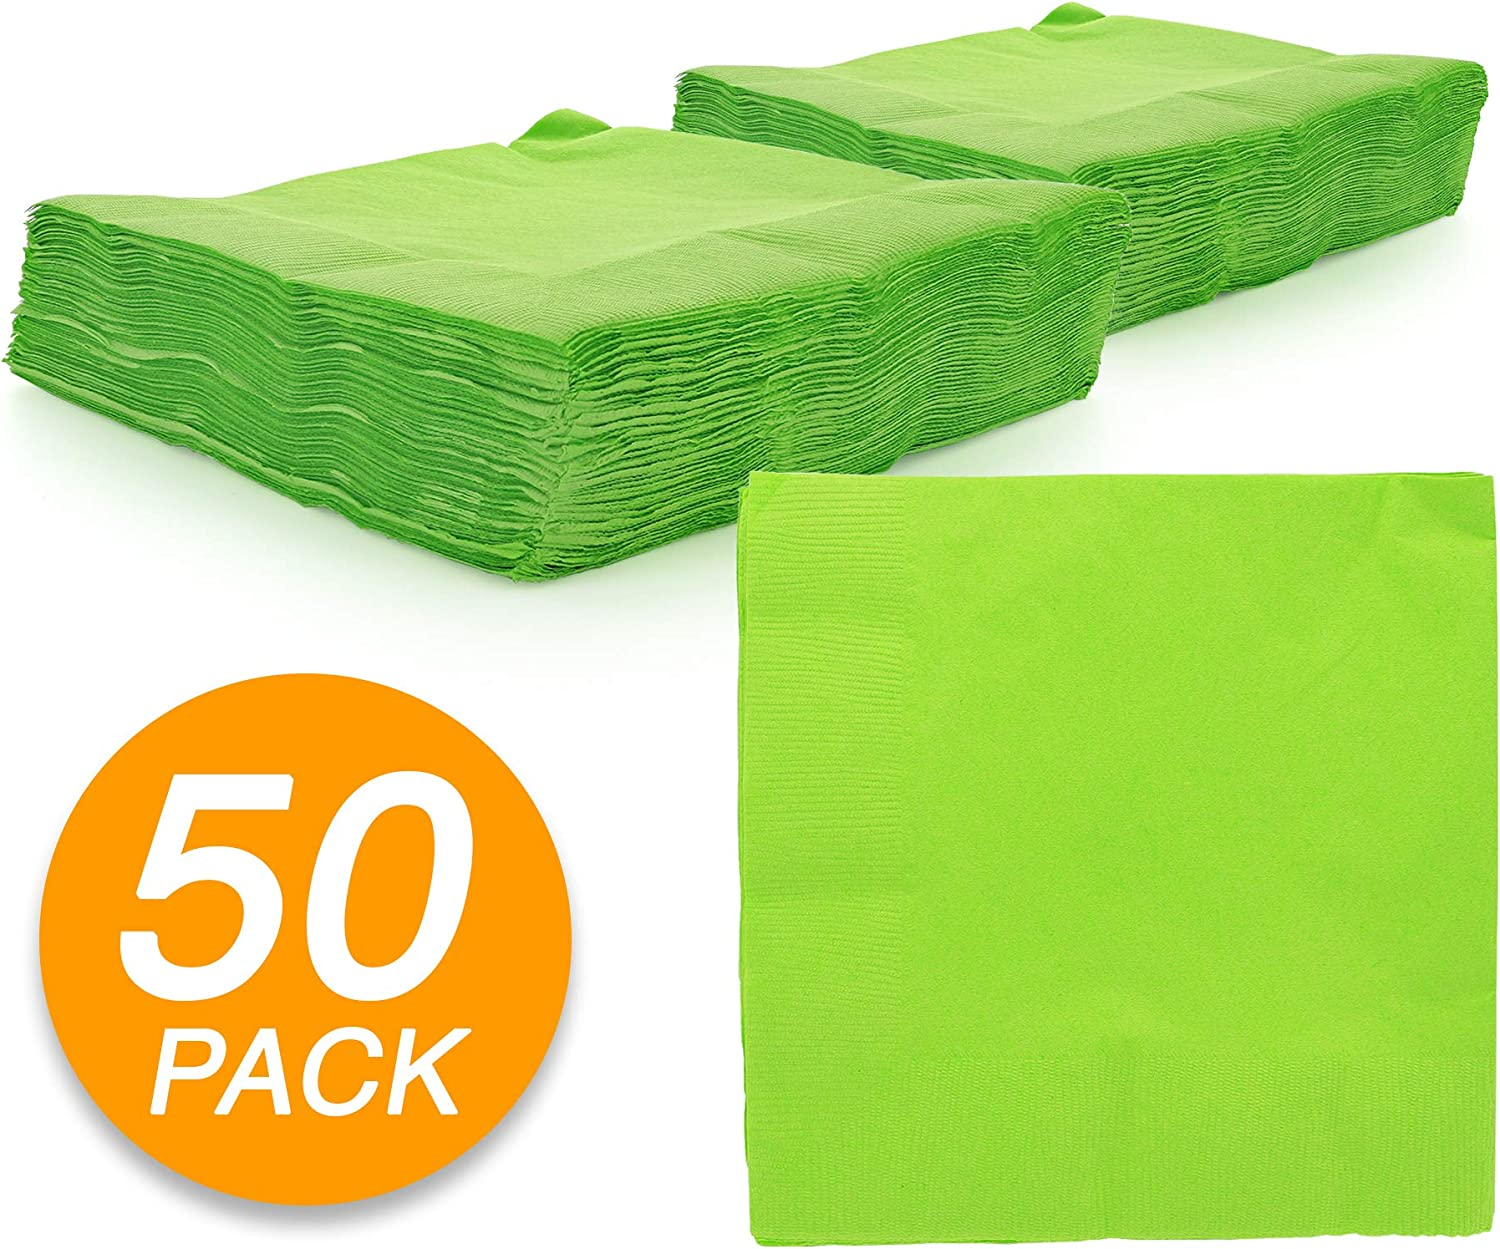 "Birthday Dinner Amcrate Big Party Pack 125 Count Kiwi Green Beverage Napkins Party 5/"" x 5/"" Lunch Ideal for Wedding Cocktails."